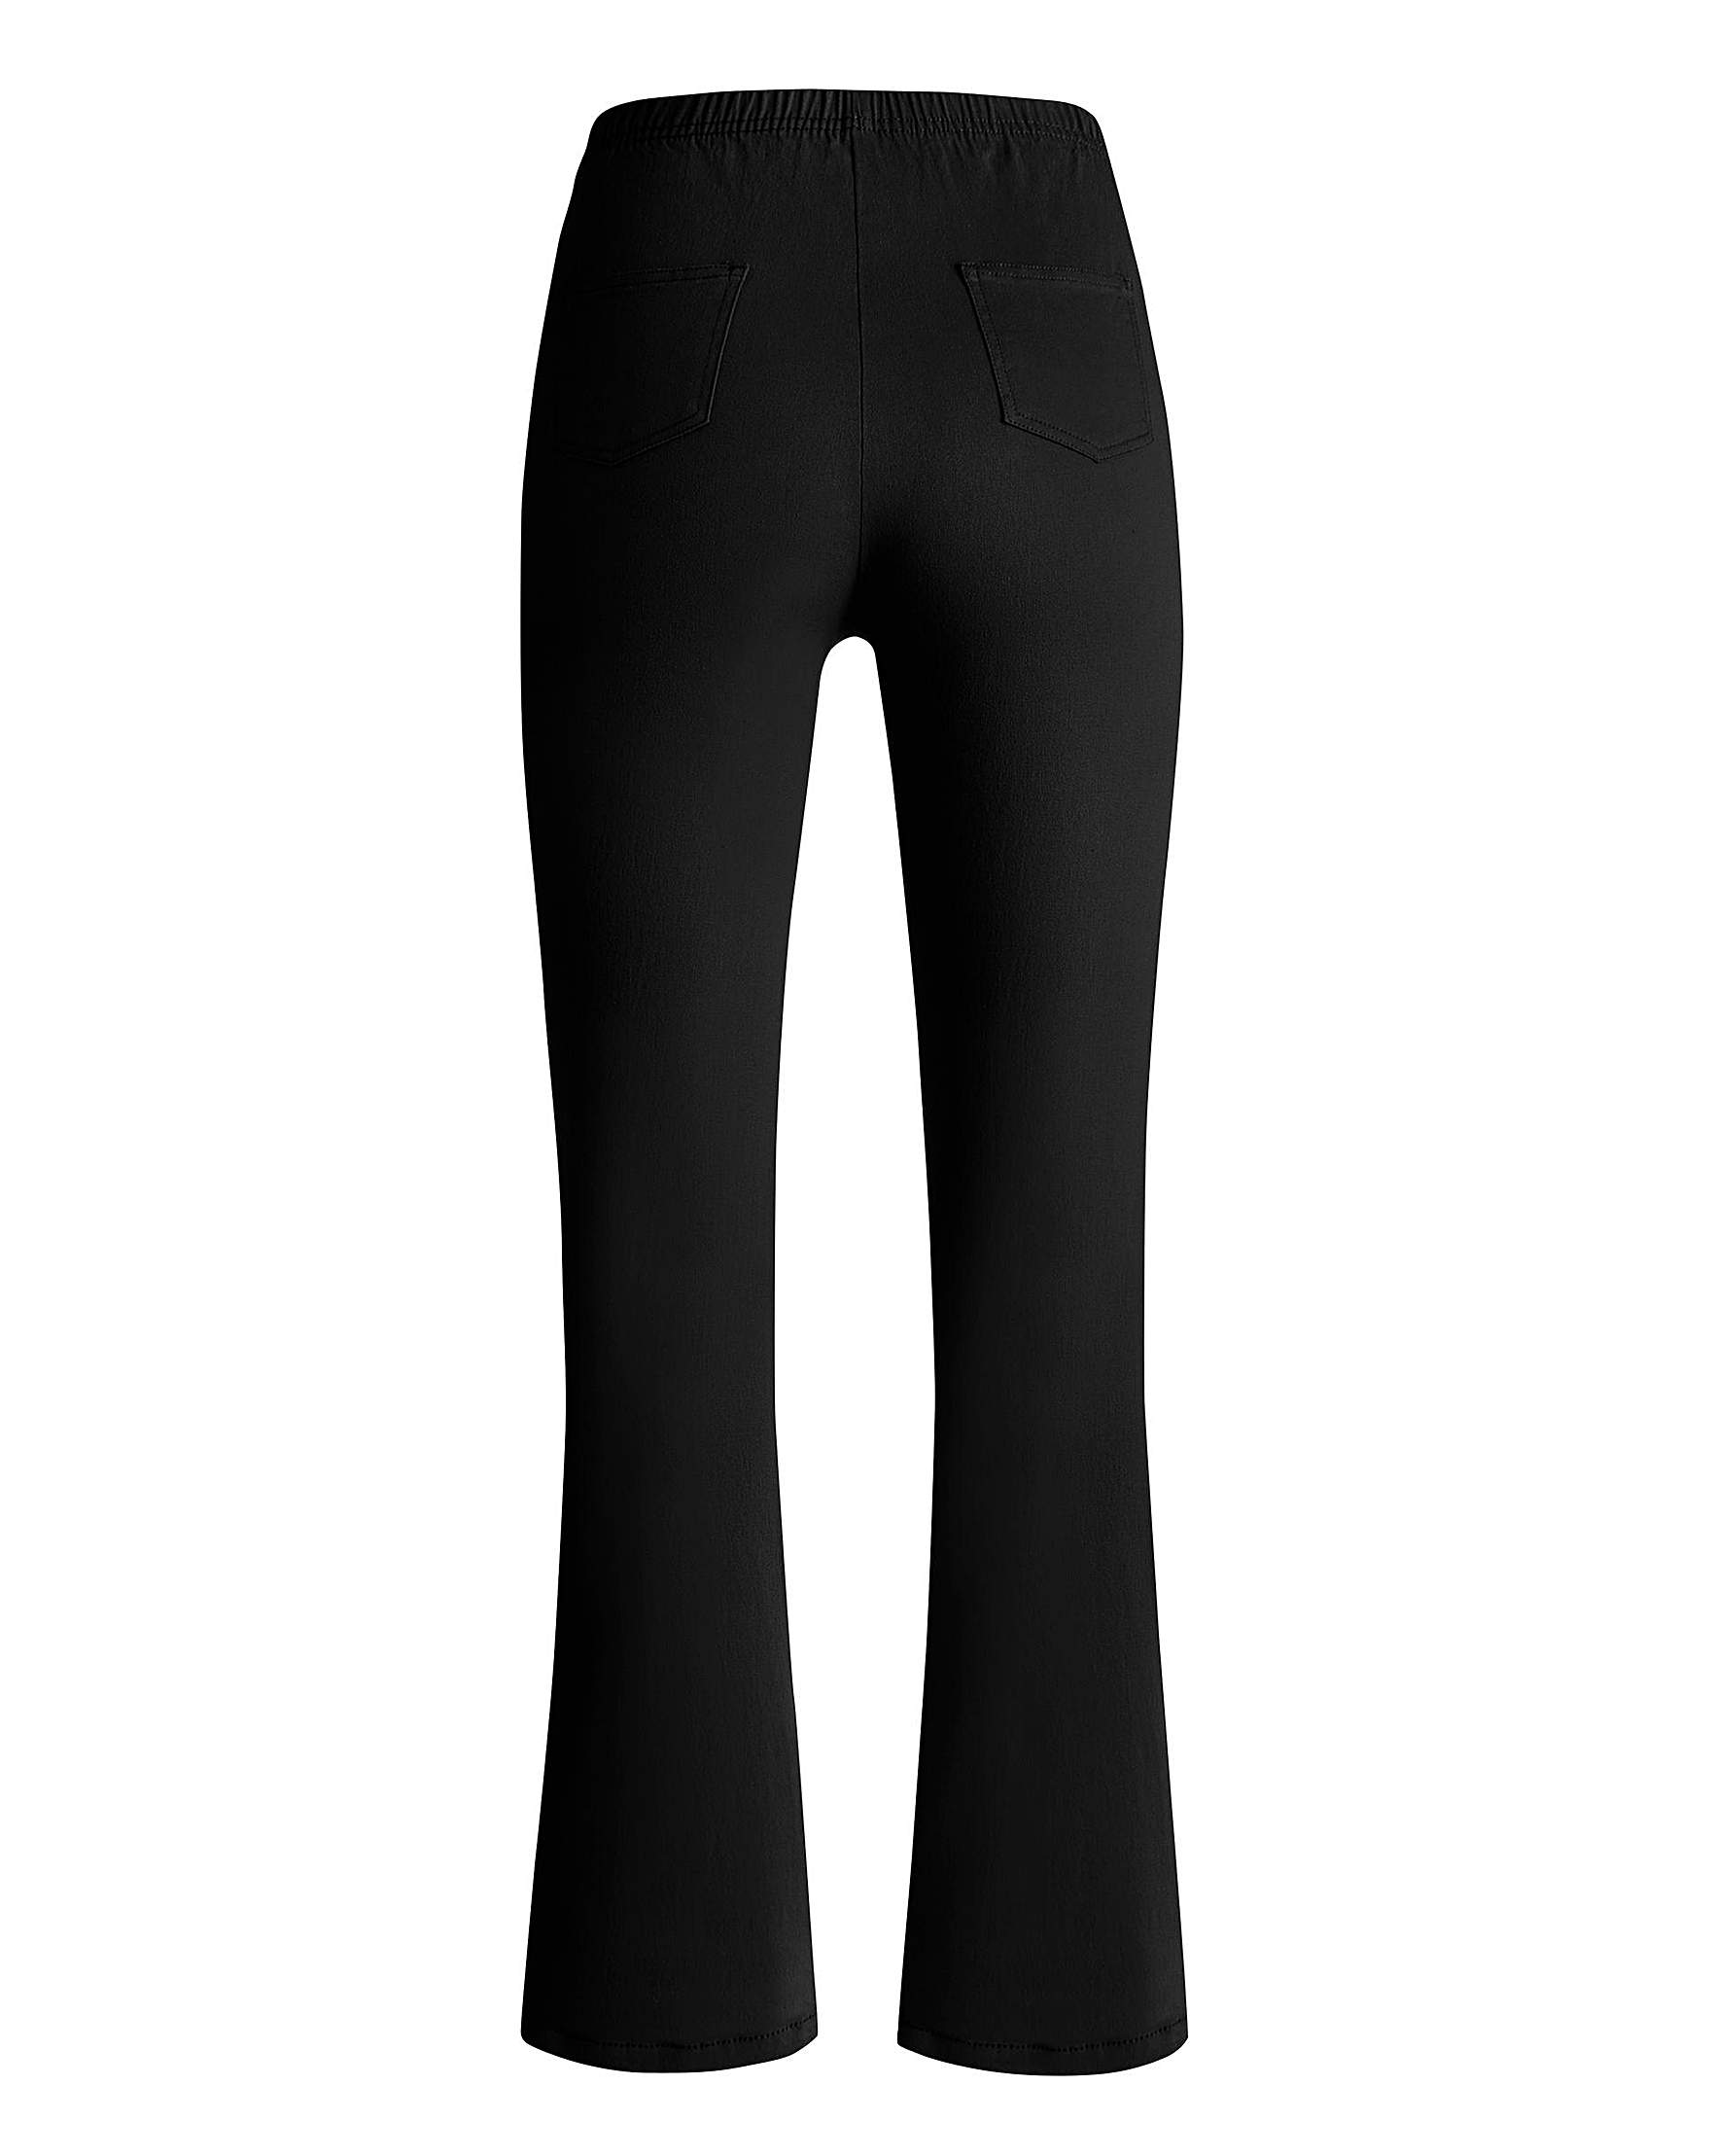 ce3a01e7dd529 Bootcut Pull-On Jeggings Long | J D Williams